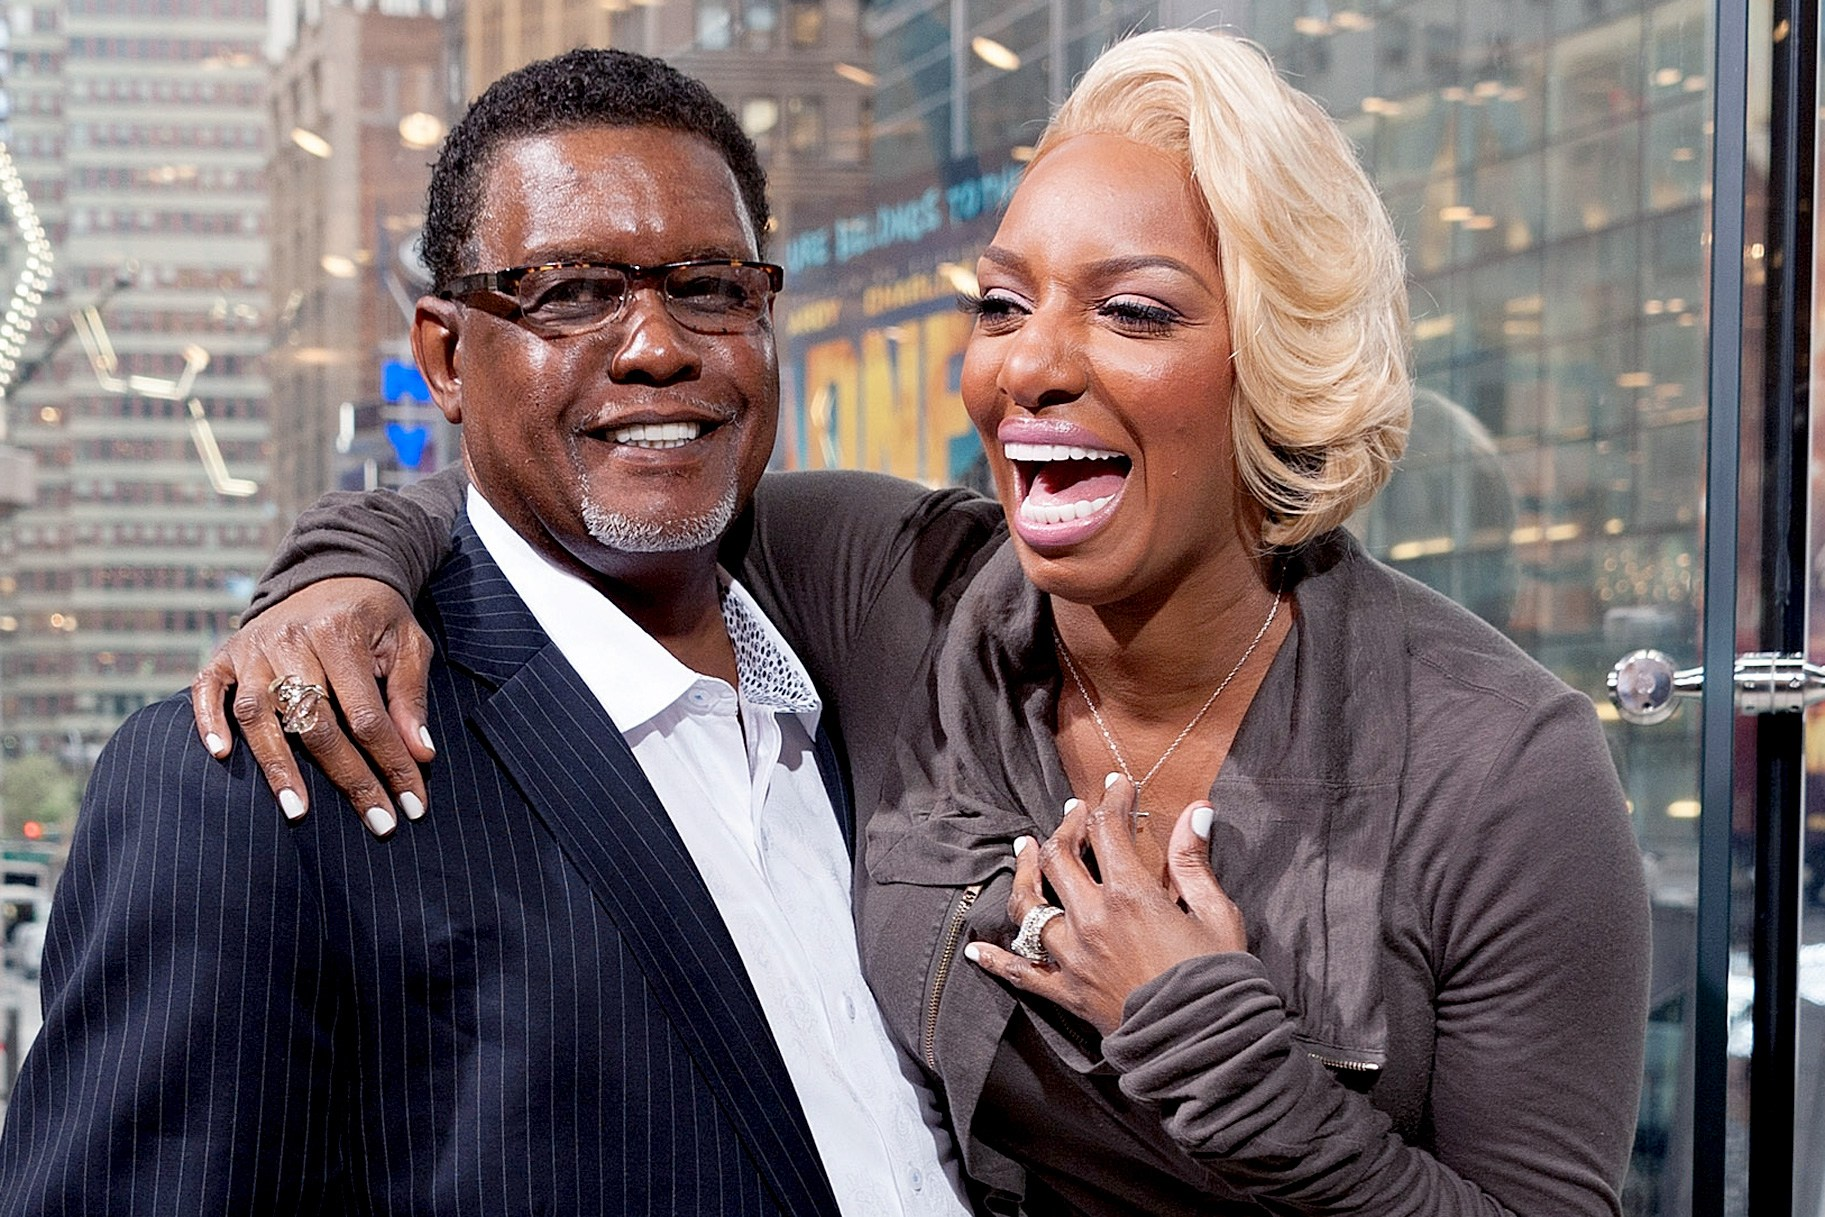 NeNe Leakes Claps Back At Haters Accusing Her Of Not Taking Goof Care Of Her Husband Gregg Leakes